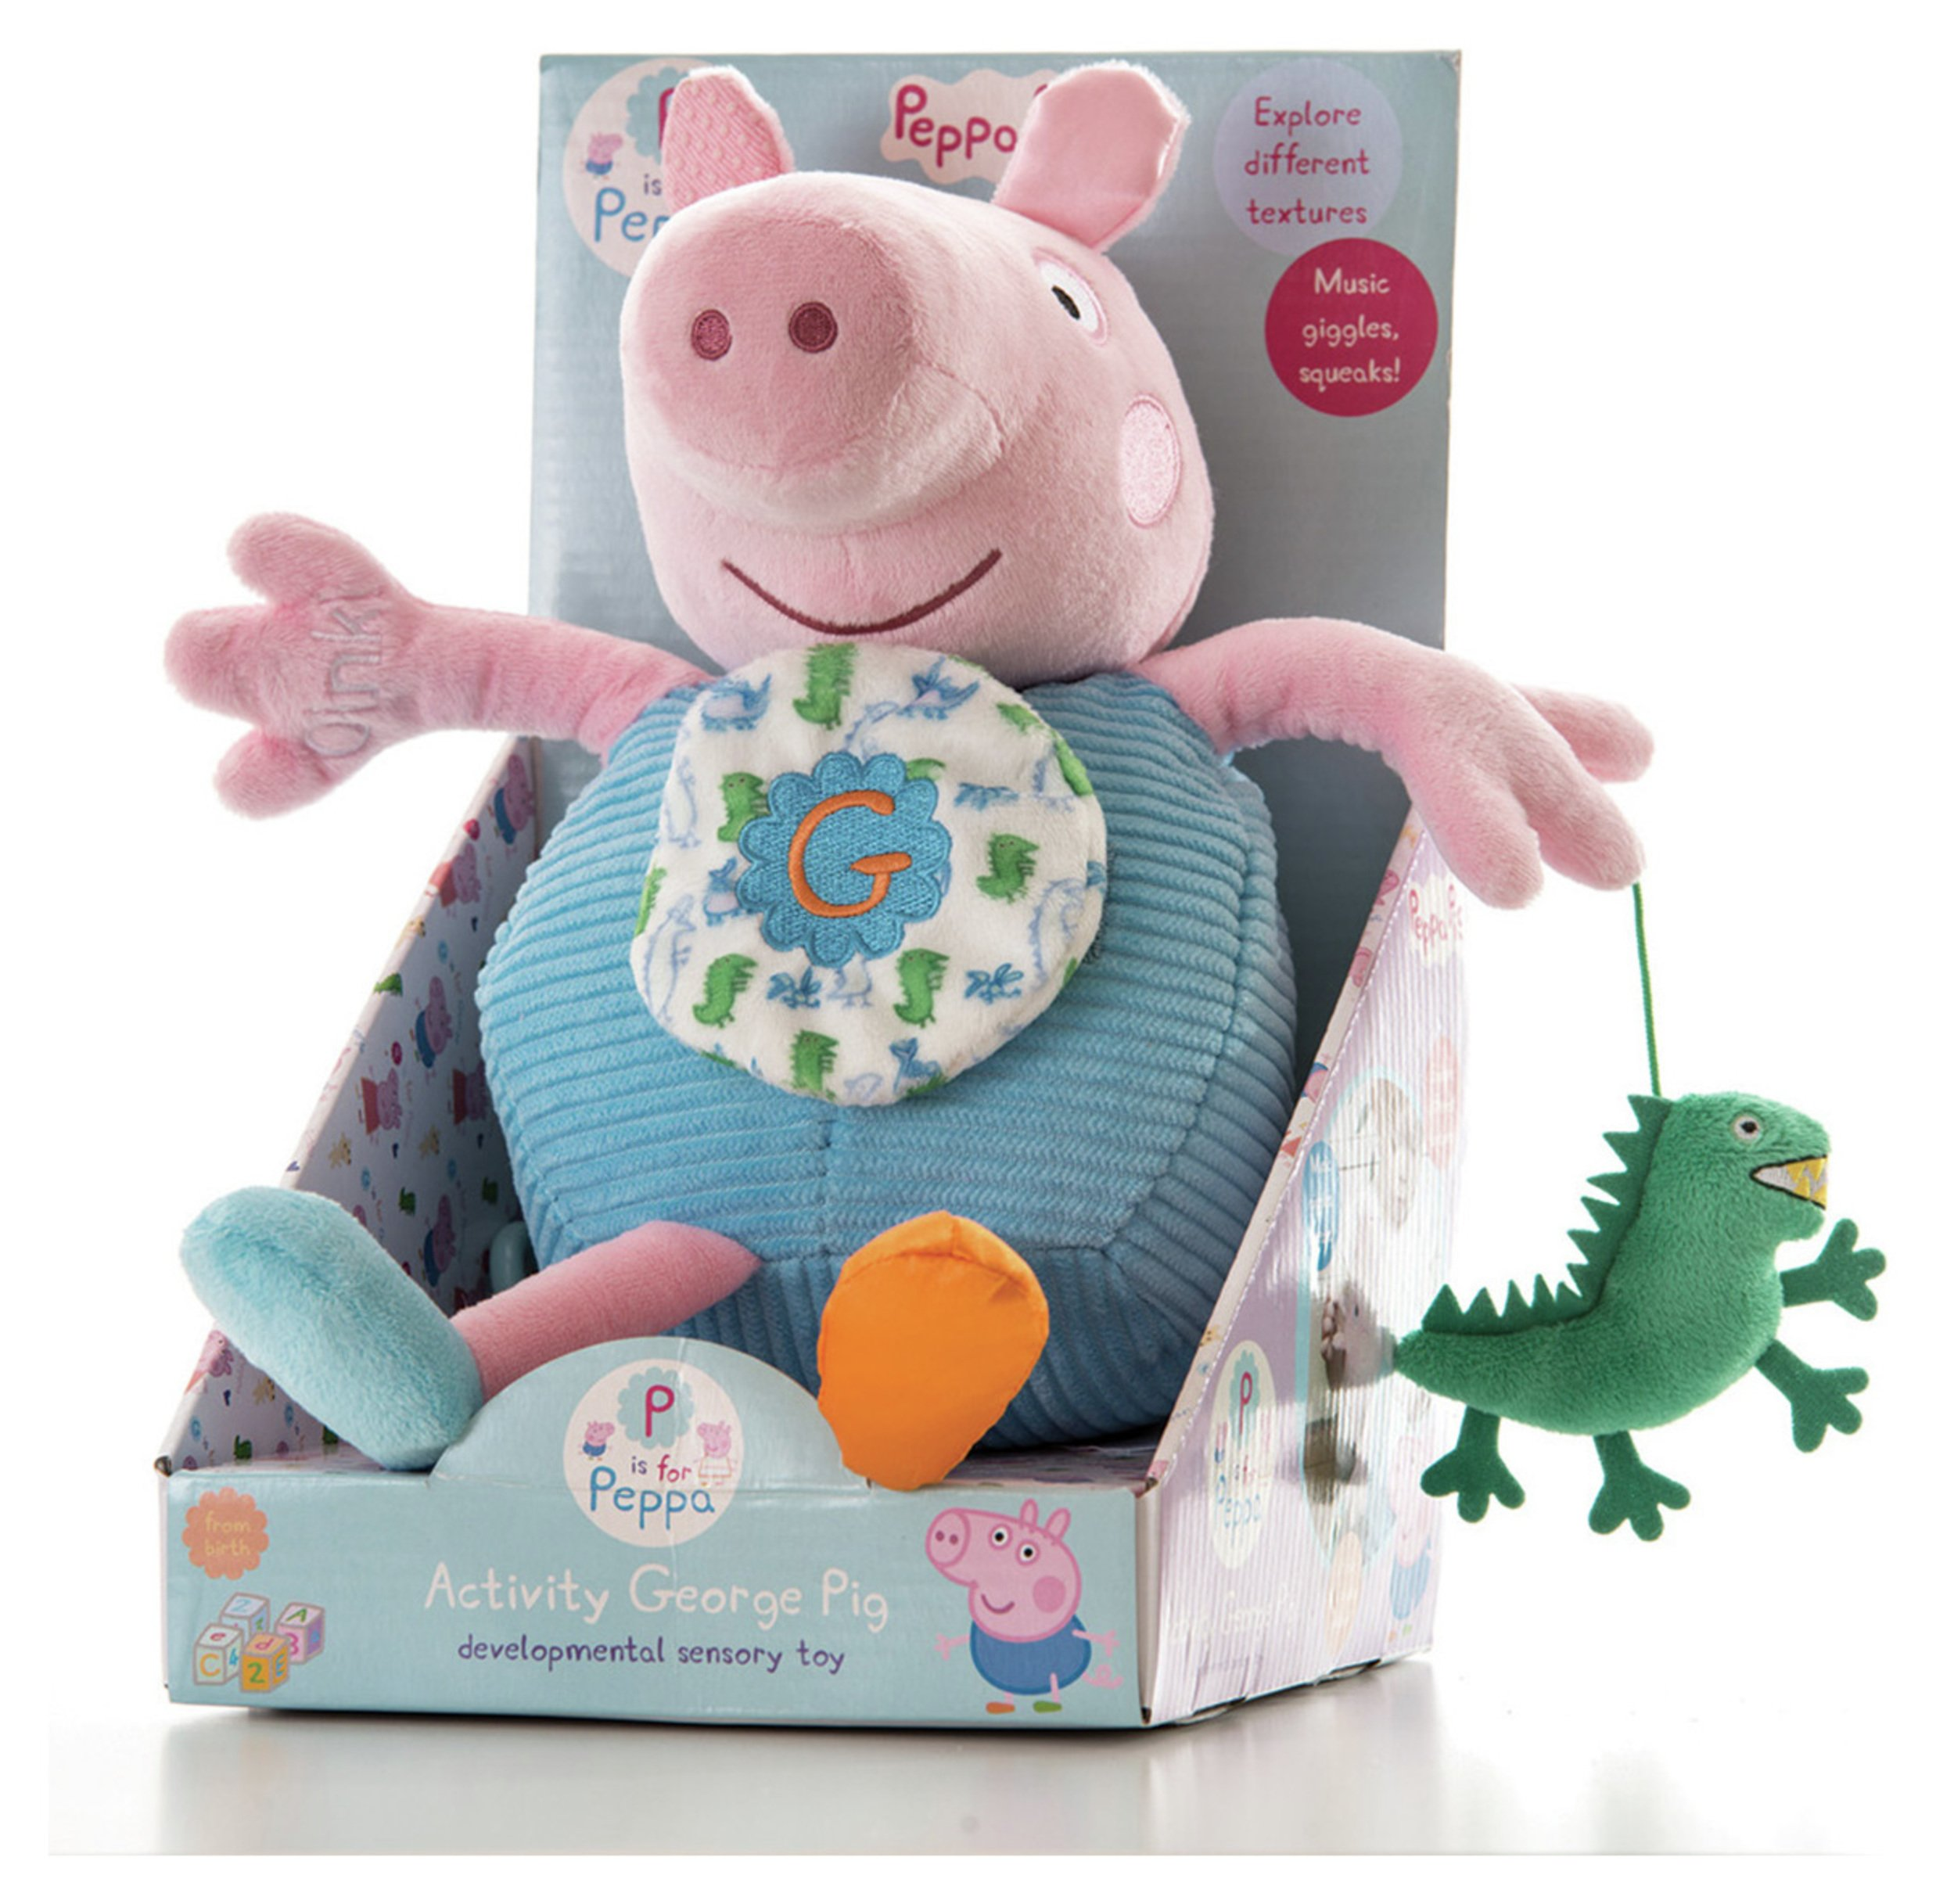 Peppa Pig - Baby George Pig Activity Toy